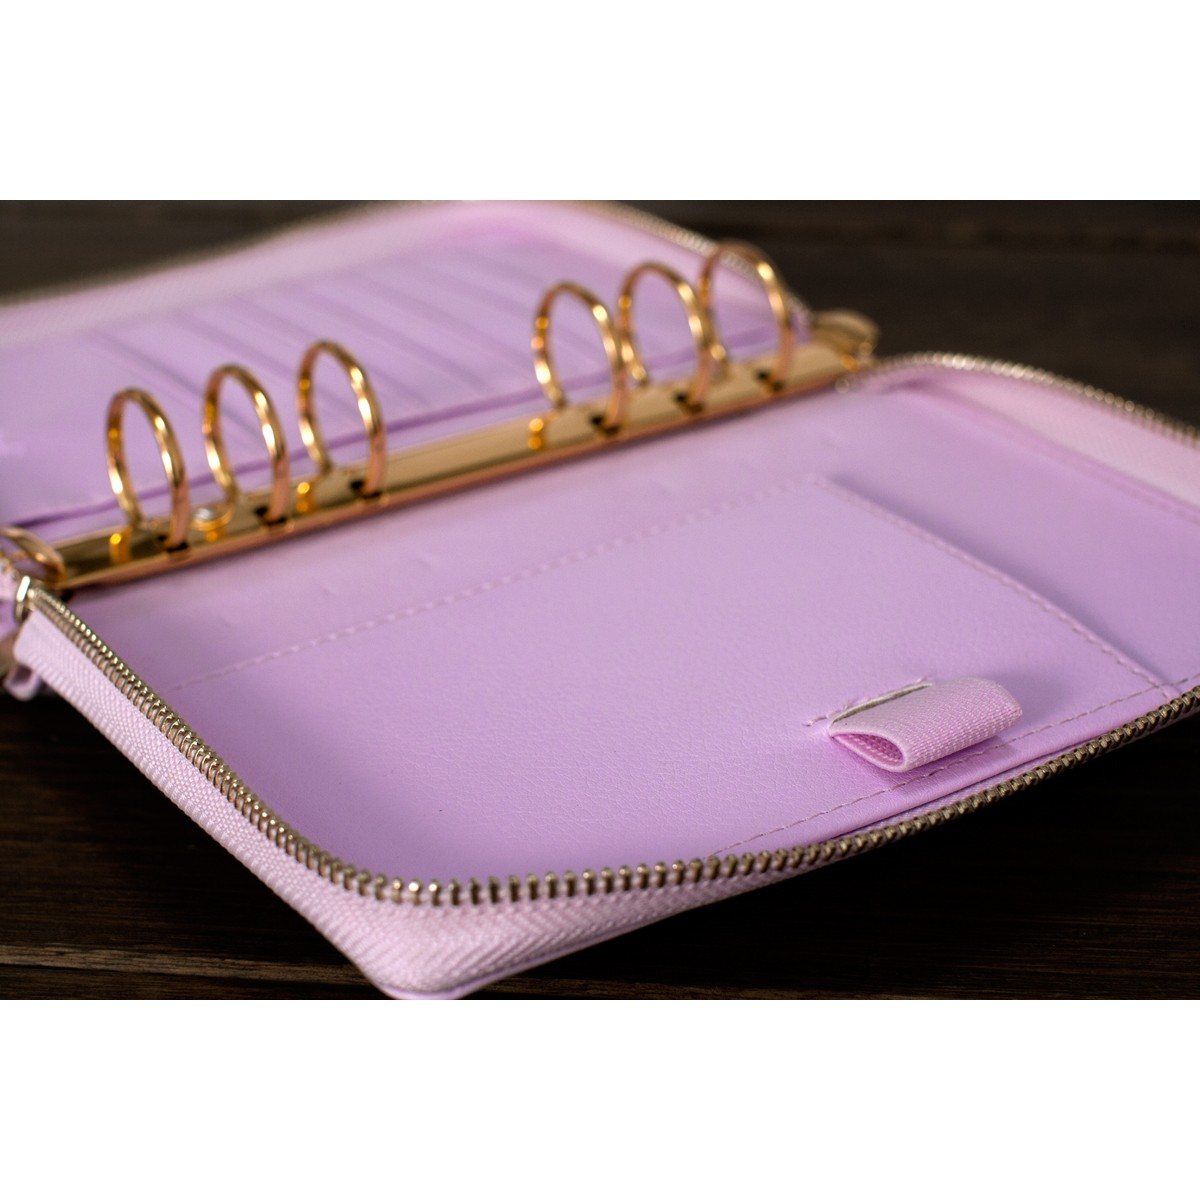 [Minor Flaw] DOKIBOOK LILAC GOLD RINGS WITH ZIP SMALL